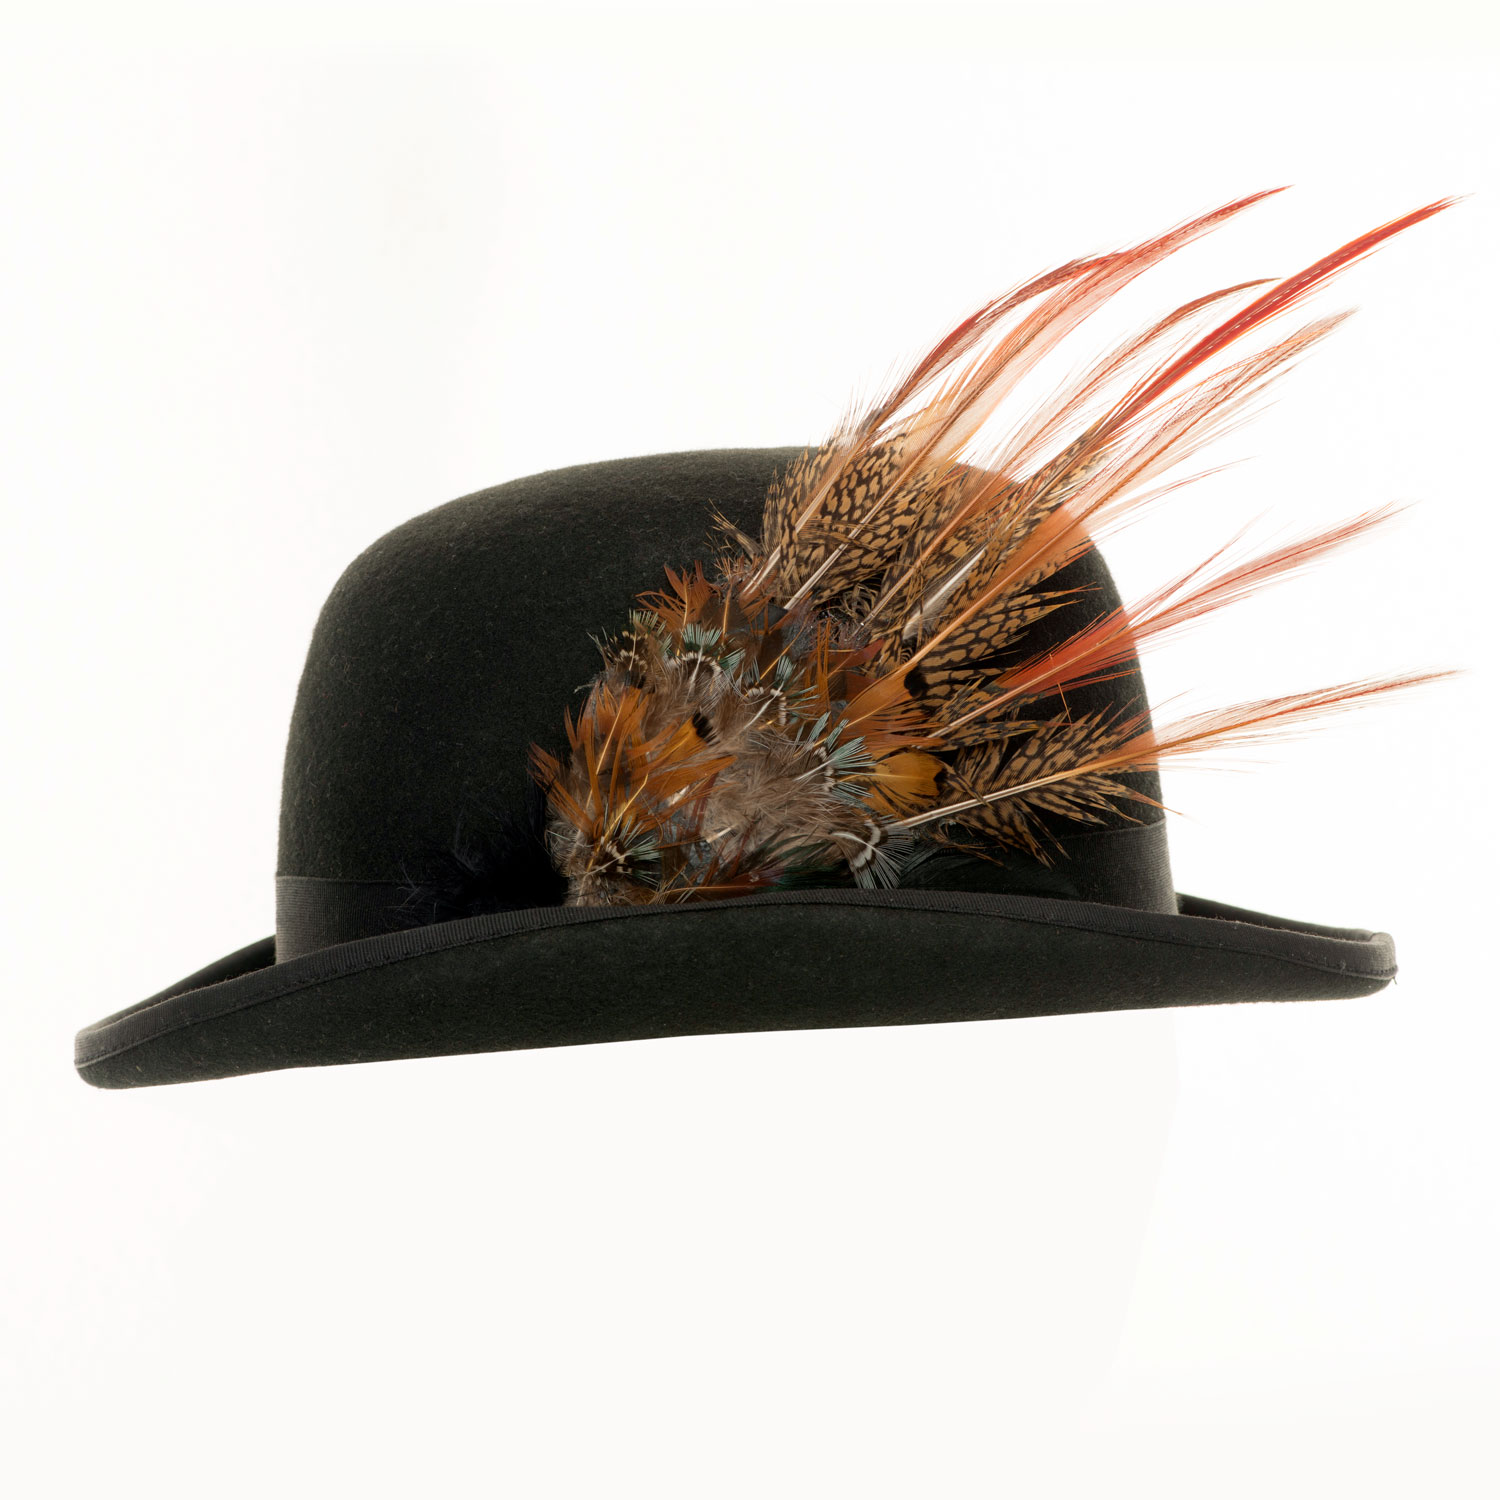 VINTAGE BOWLER HAT WITH PHEASANT FEATHERS